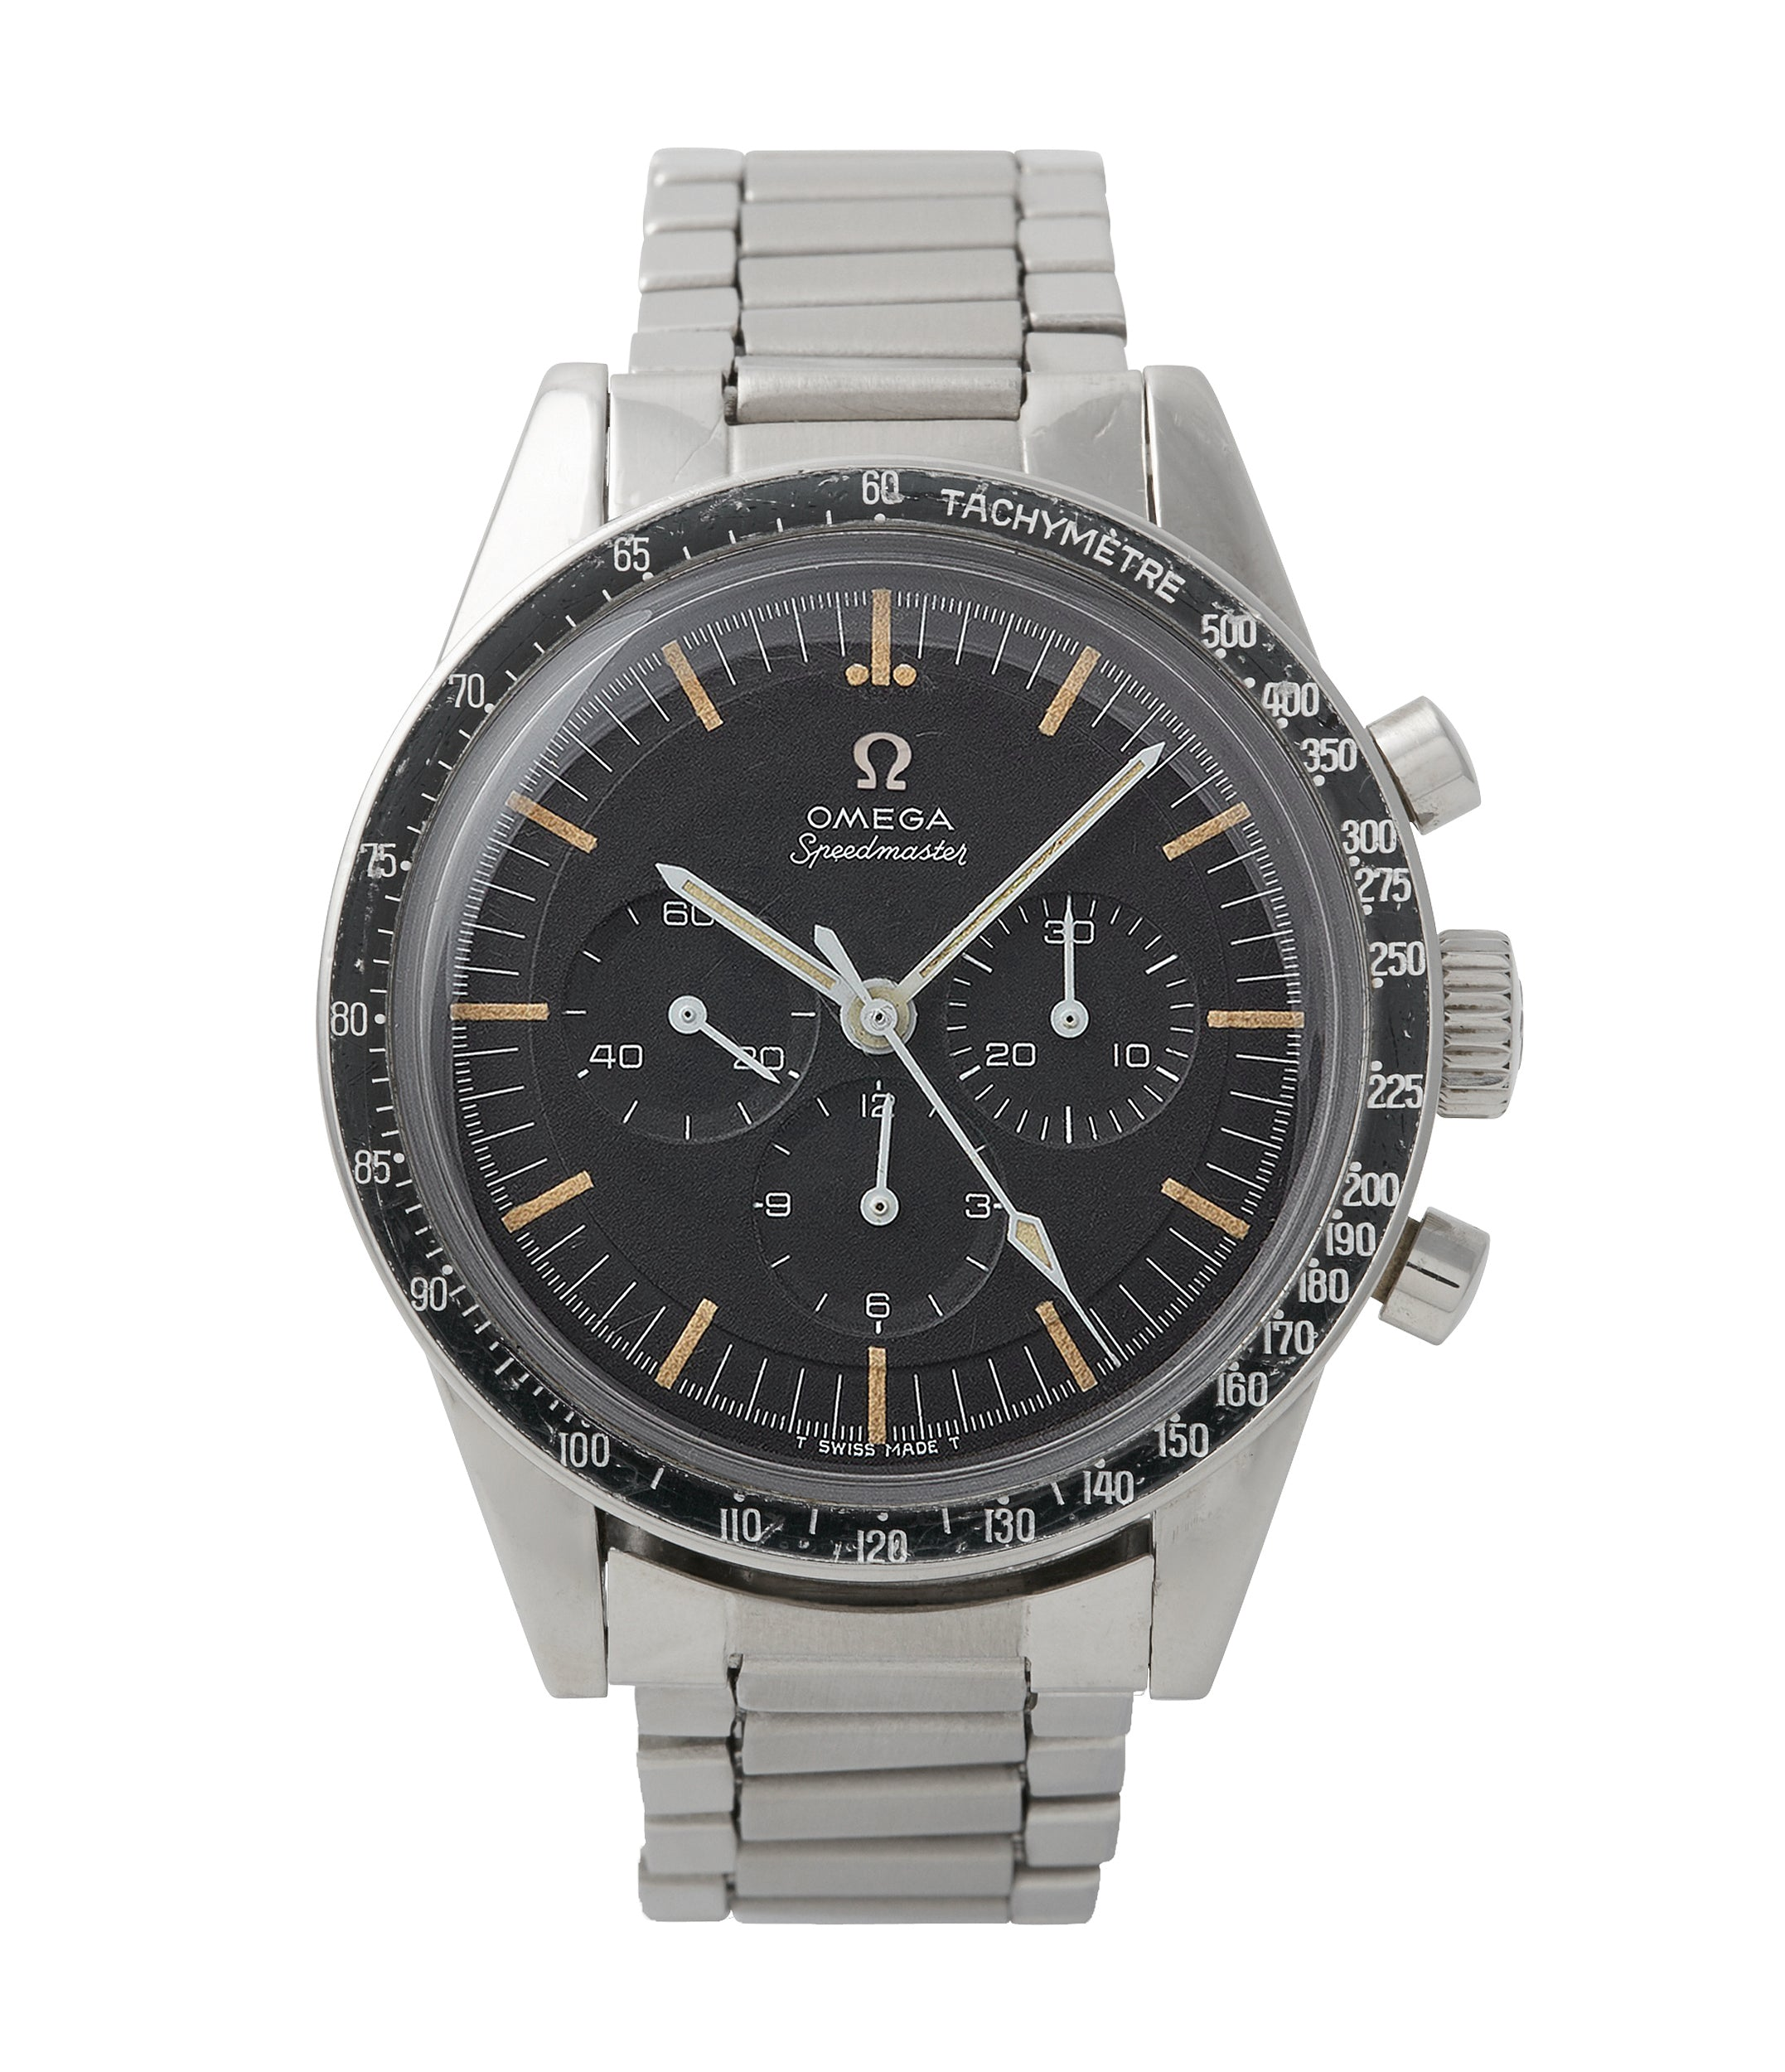 buy vintage Omega Speedmaster pre-professional Ed White 105.003-65 steel chronograph sports watch online at A Collected Man London